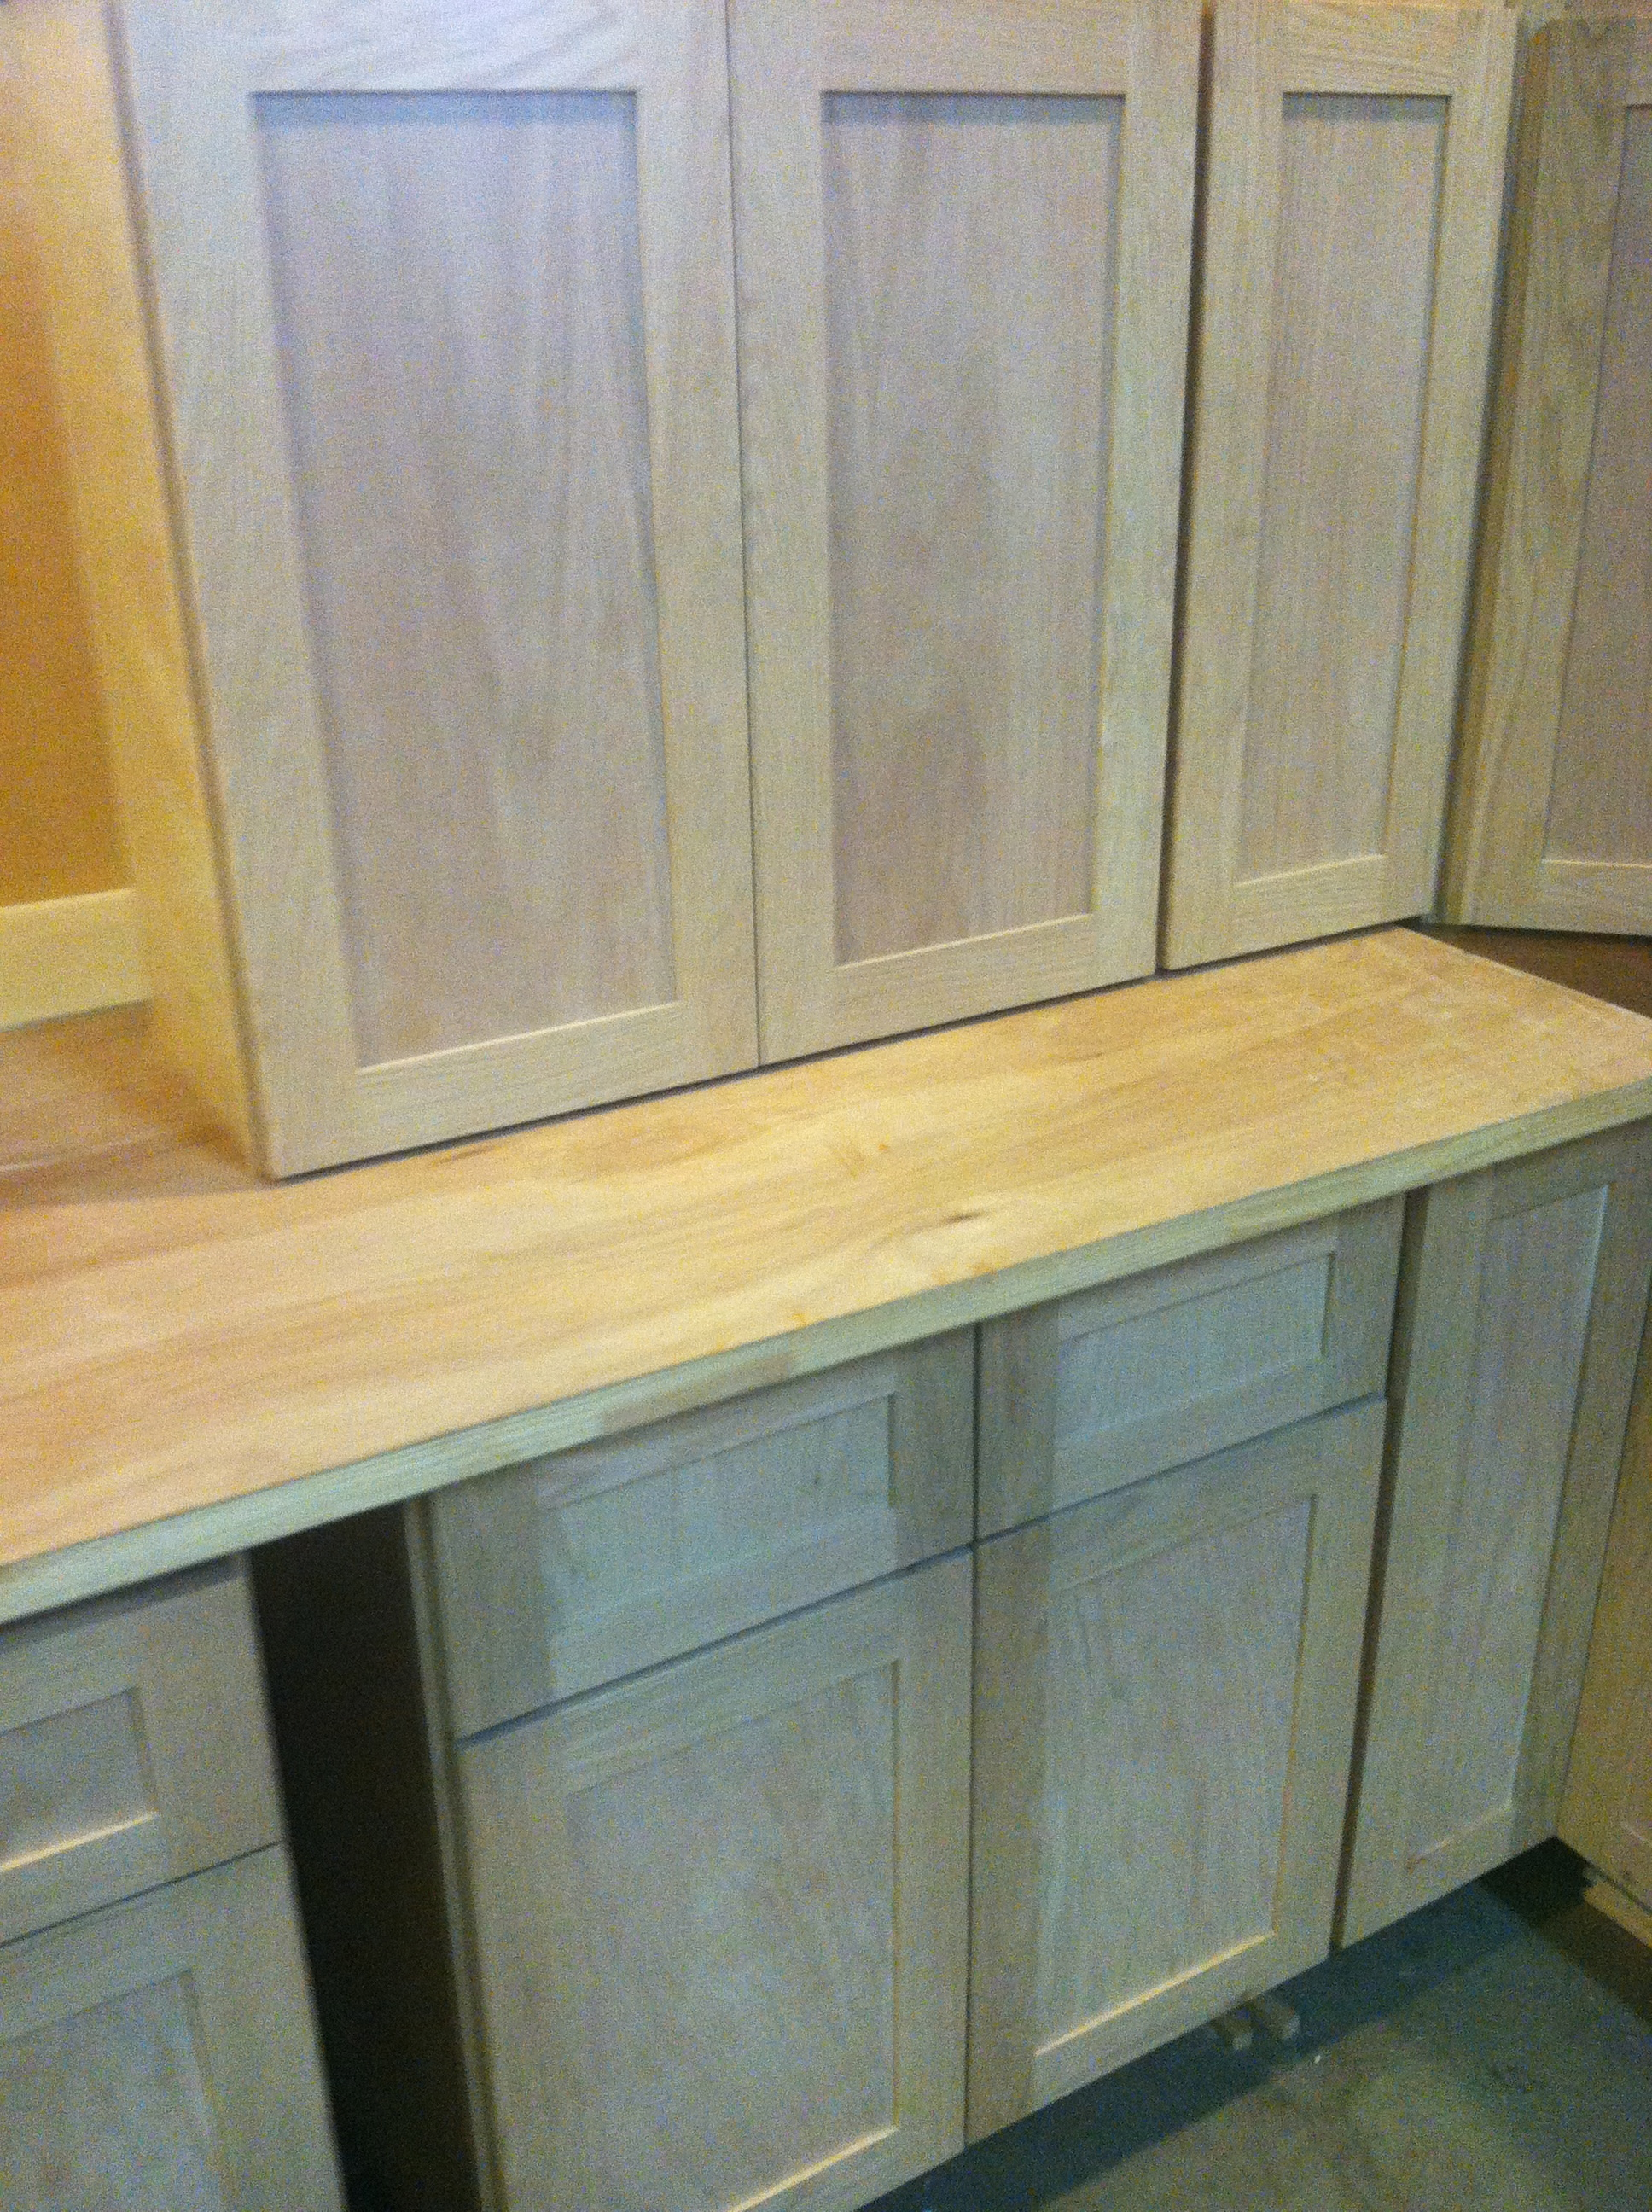 IMG_1490 & Beautiful Shaker-Style Oak Kitchen Cabinets Now Available at Bud\u0027s ... kurilladesign.com